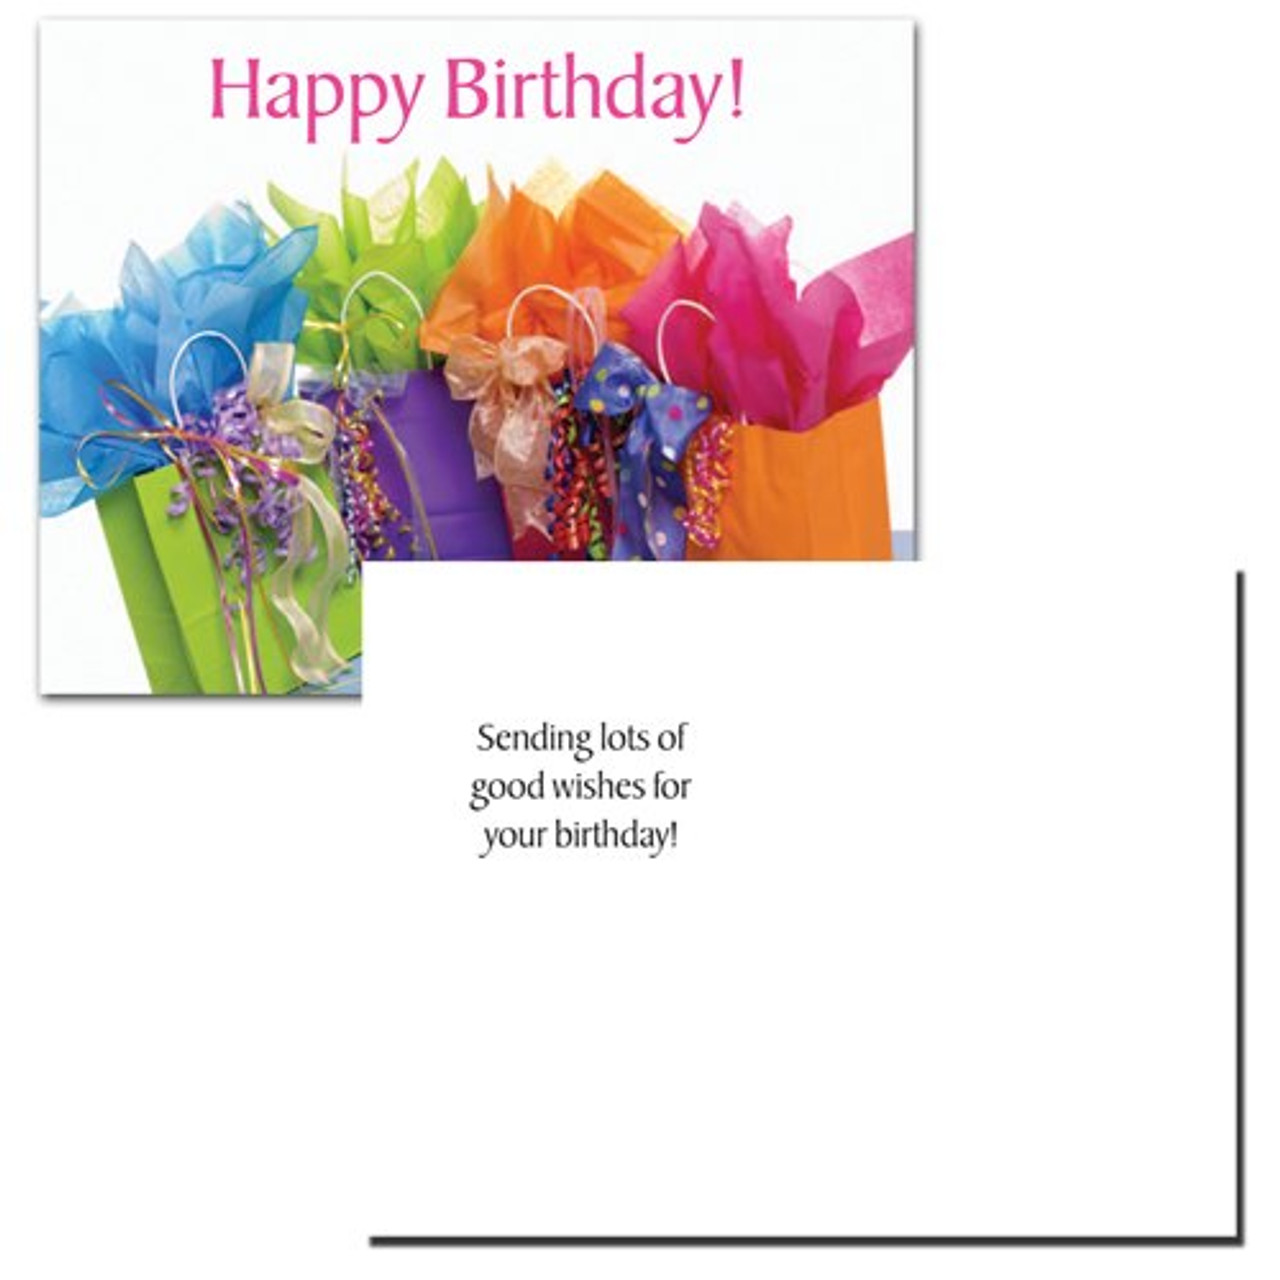 "Birthday postcard ""Gift Bags"" with a photo of 5 colored different gift bags with wrapping and gift items protruding and the words Happy Birthday! in red letters across the top. Flip side reads: sending lots of good wishes for your birthday!"